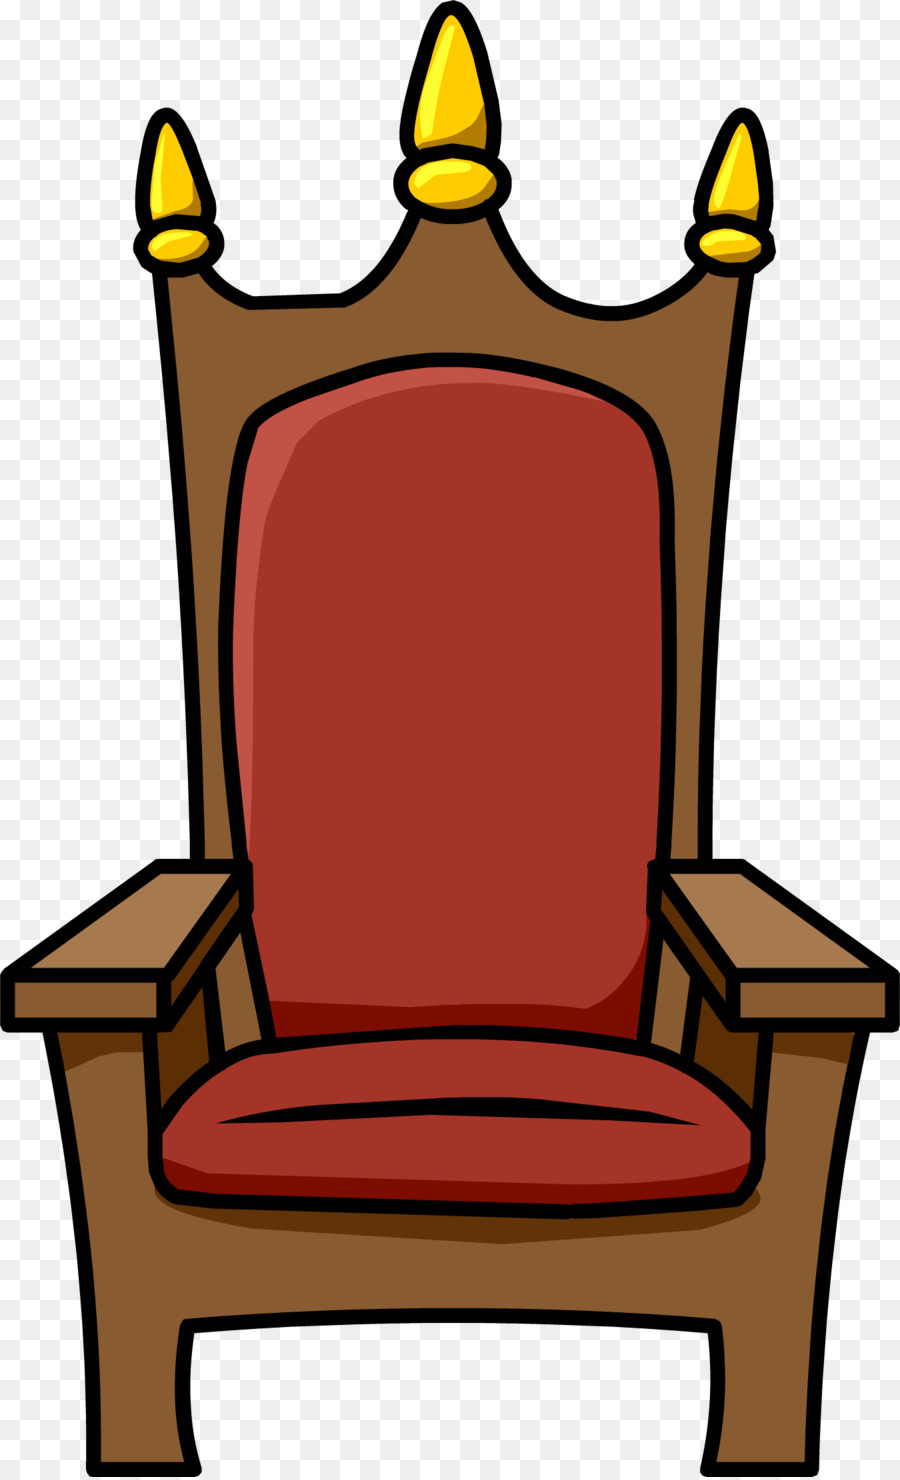 club penguin throne chair clip art throne png hd png download rh kisspng com throne clipart throne clipart free